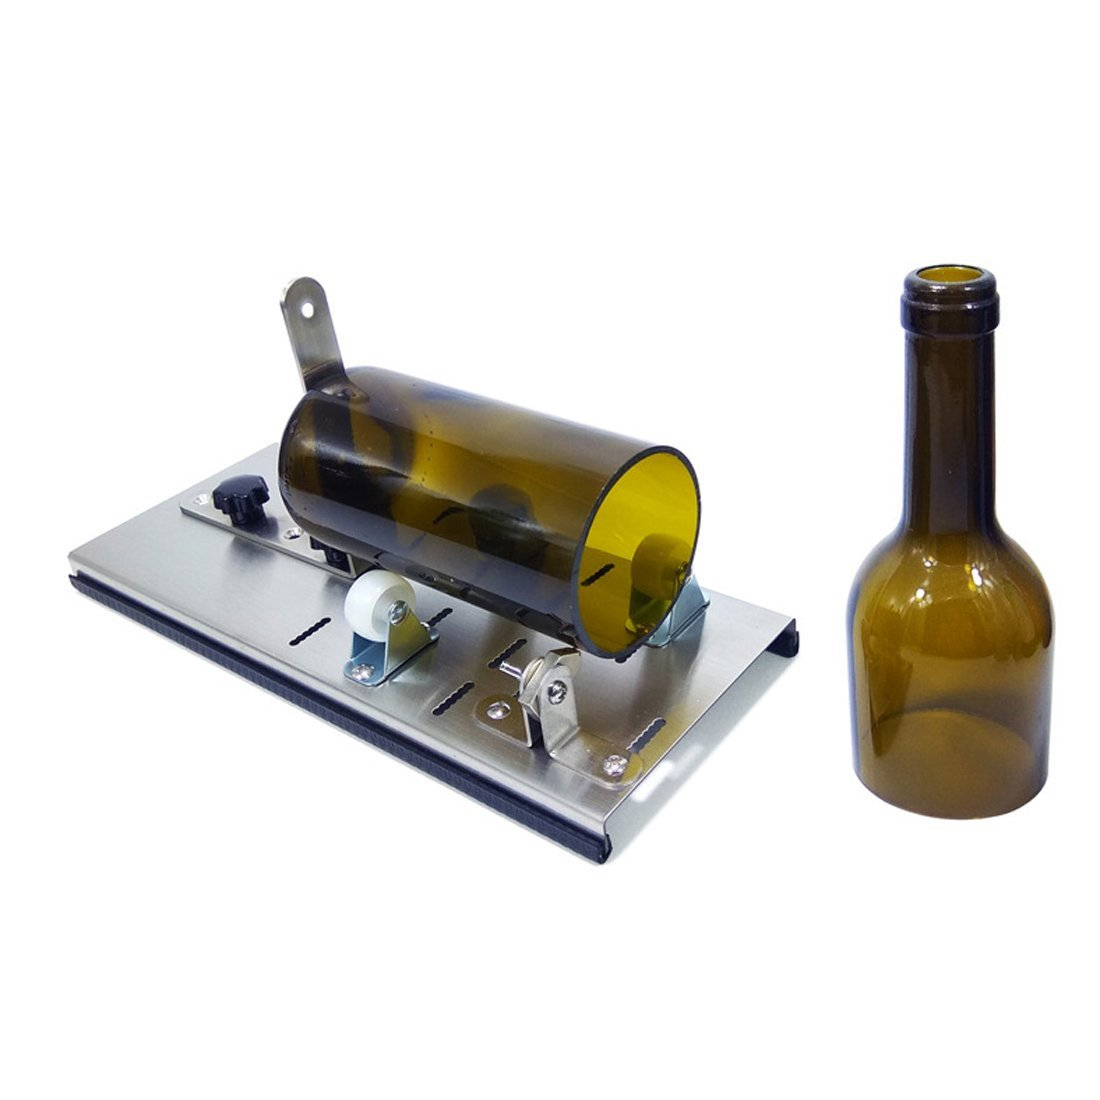 Glass Cutter for Bottles, Glass Cutting Tool for Wine Beer Liquor Whiskey Alcohol Champagne Water or Soda Round Bottles Leiqin